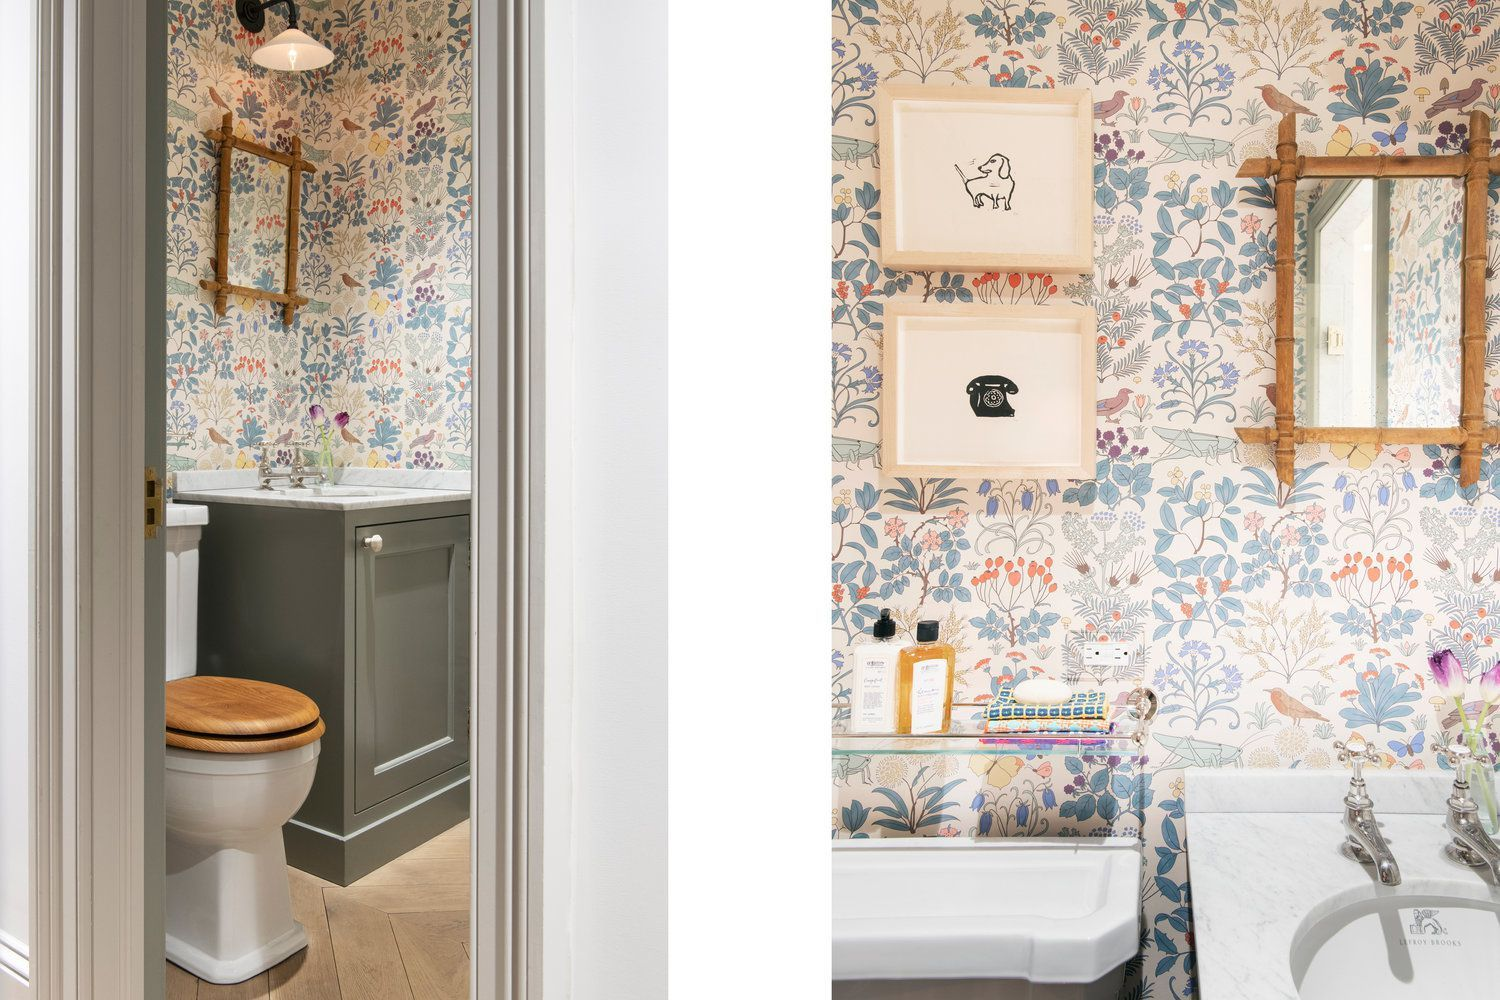 These Chic Wallpapered Bathrooms Will Convince You To Take The Plunge Bathroom Wallpaper Chic Wallpaper Brooklyn Heights